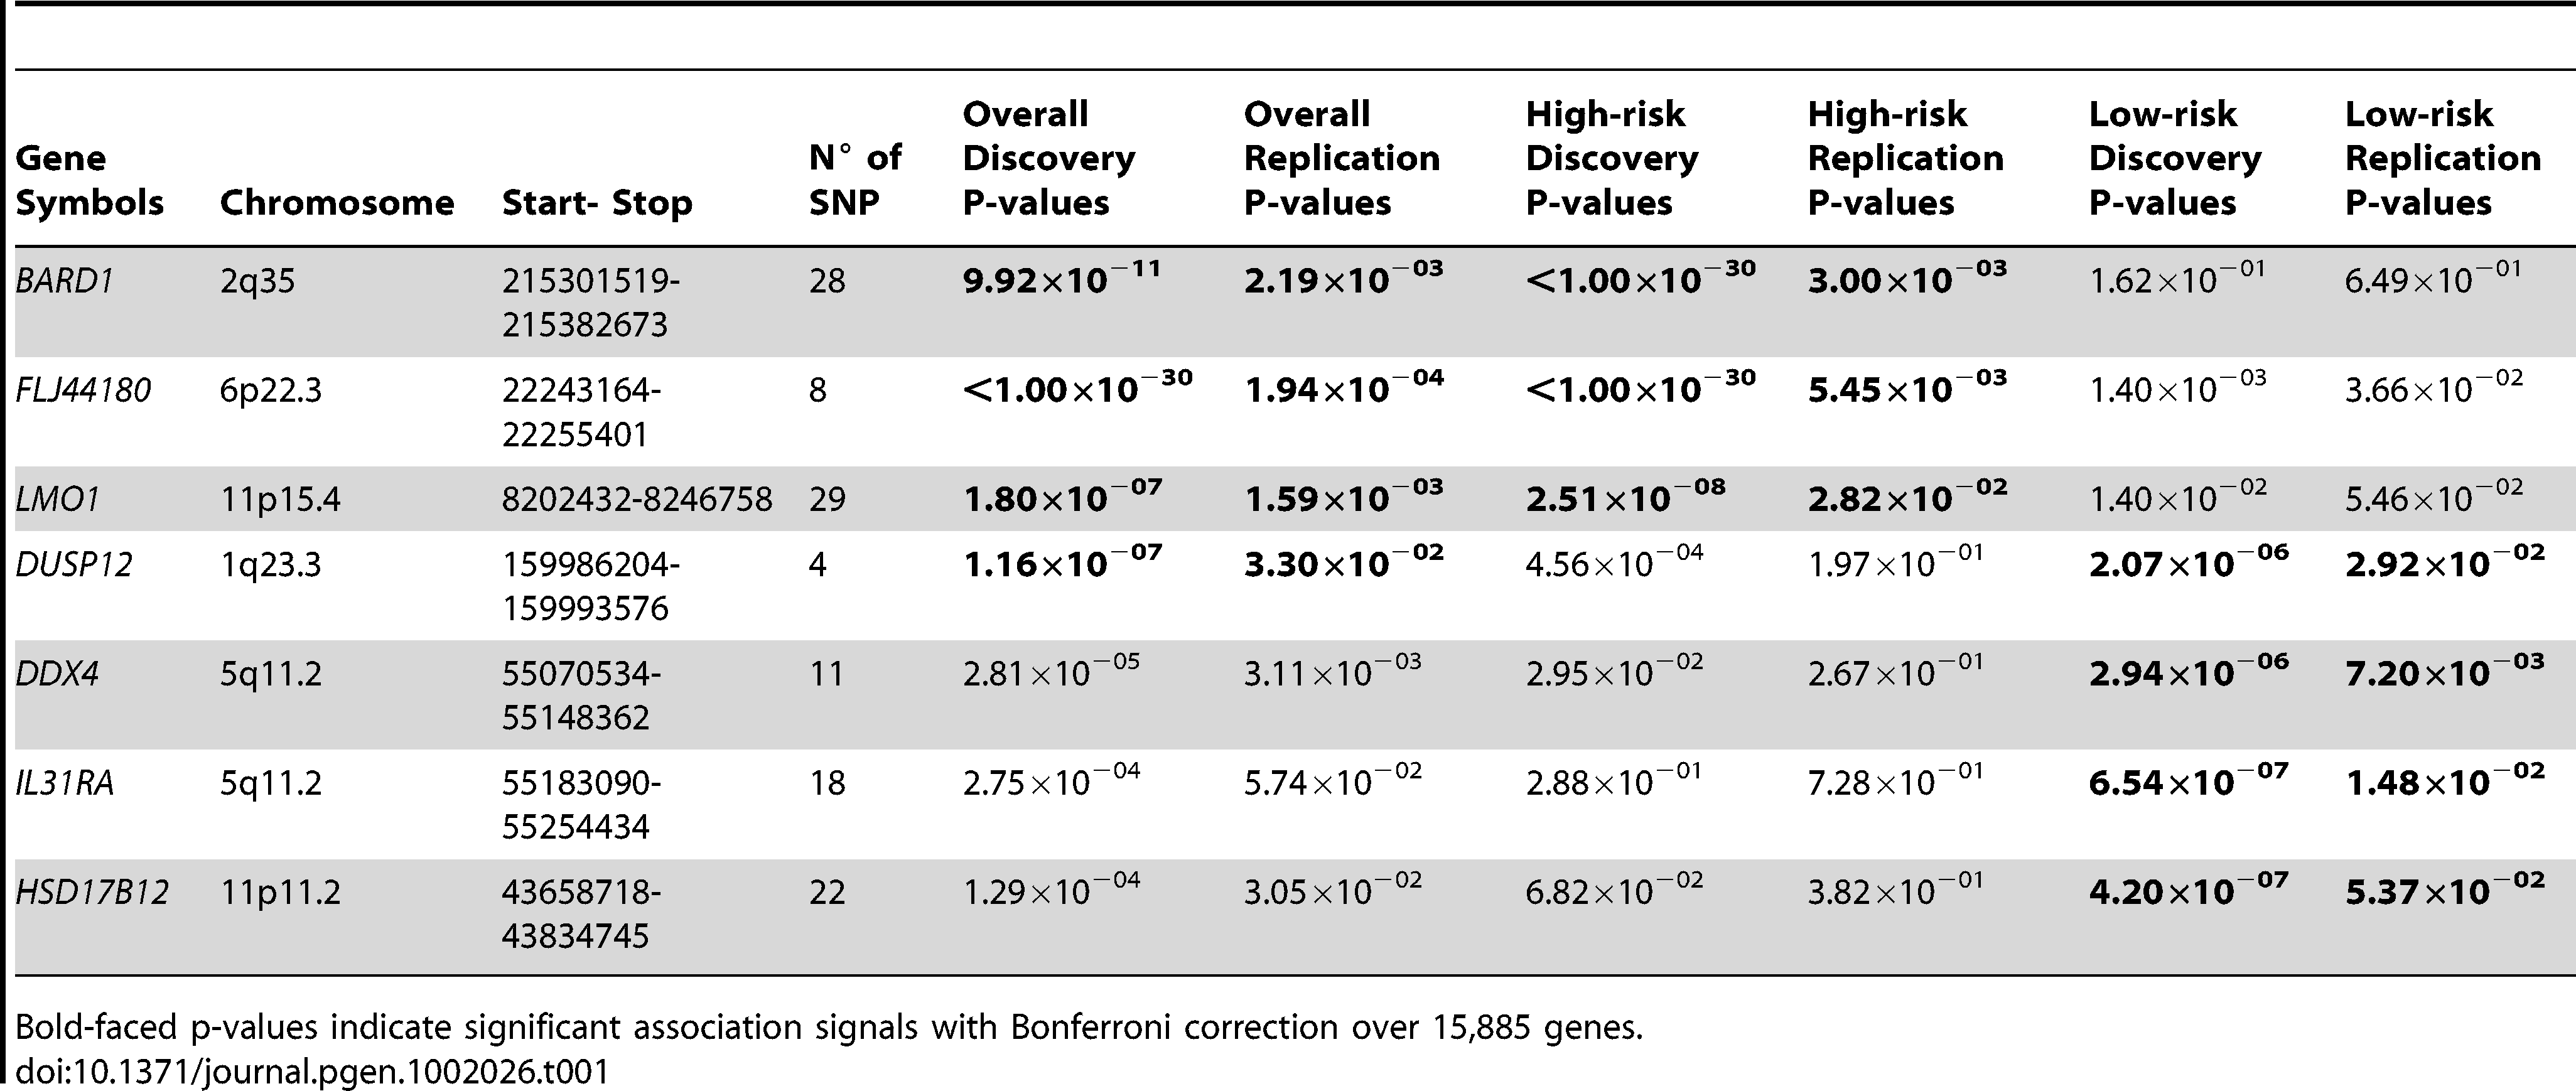 Summary of gene-centric analysis results for different phenotypic neuroblastomas.